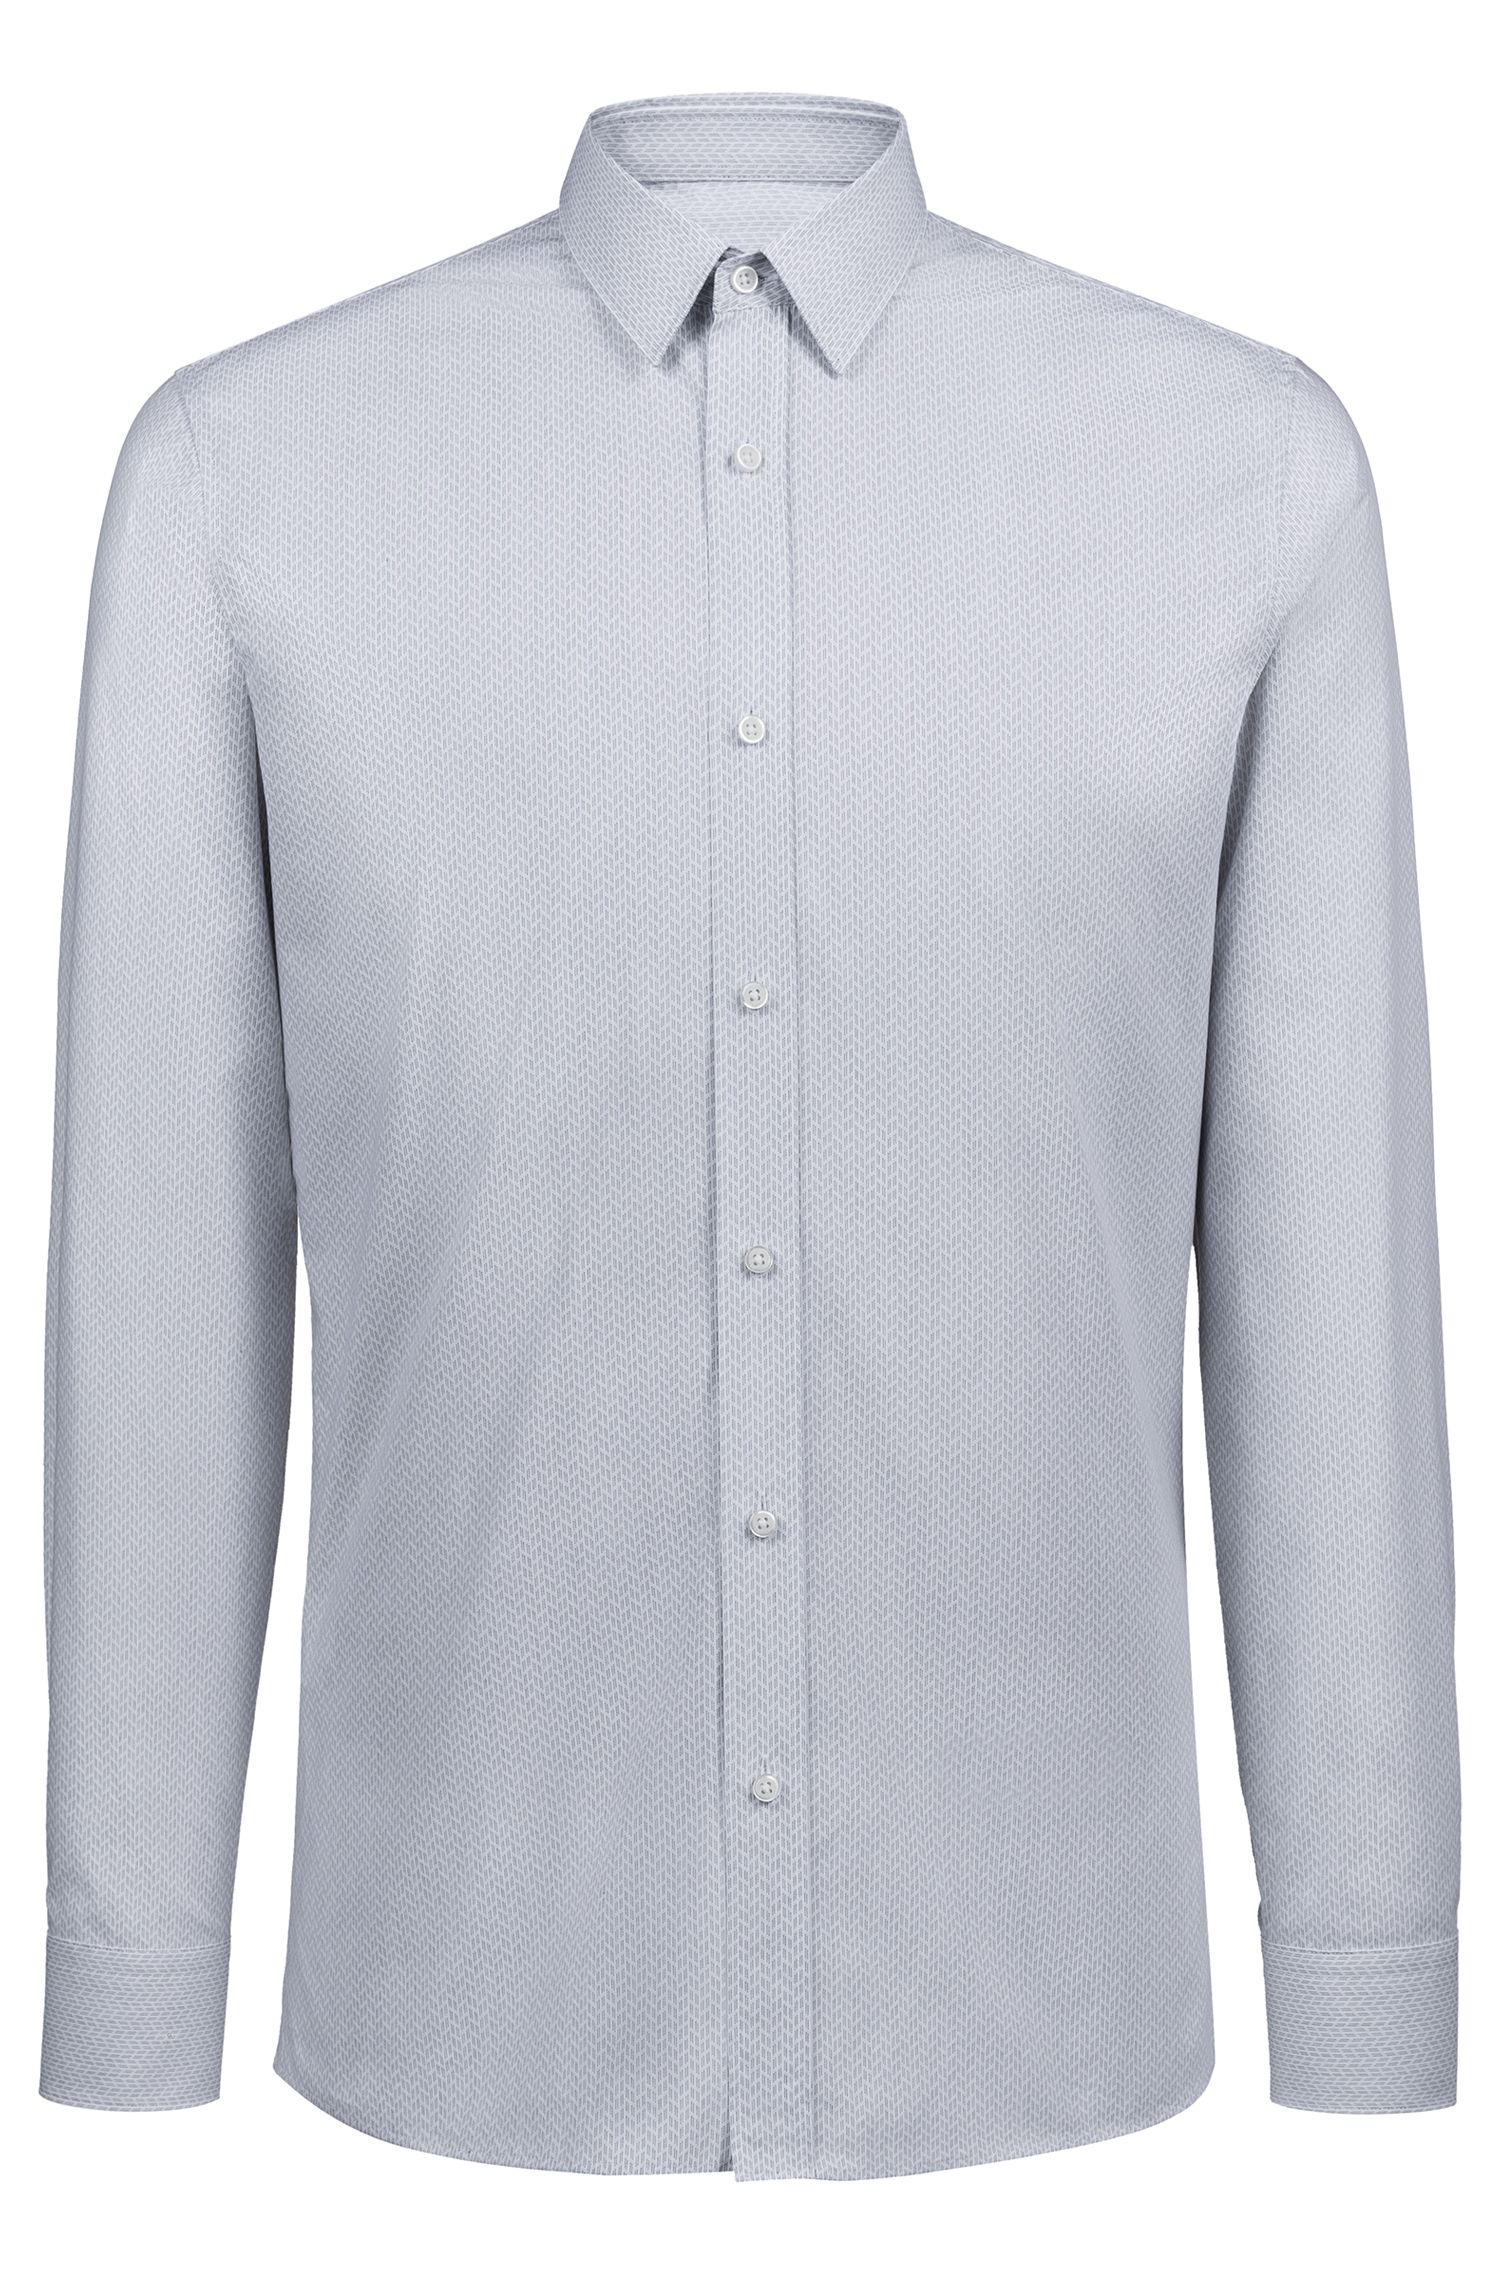 Extra-slim-fit cotton shirt with structured pattern